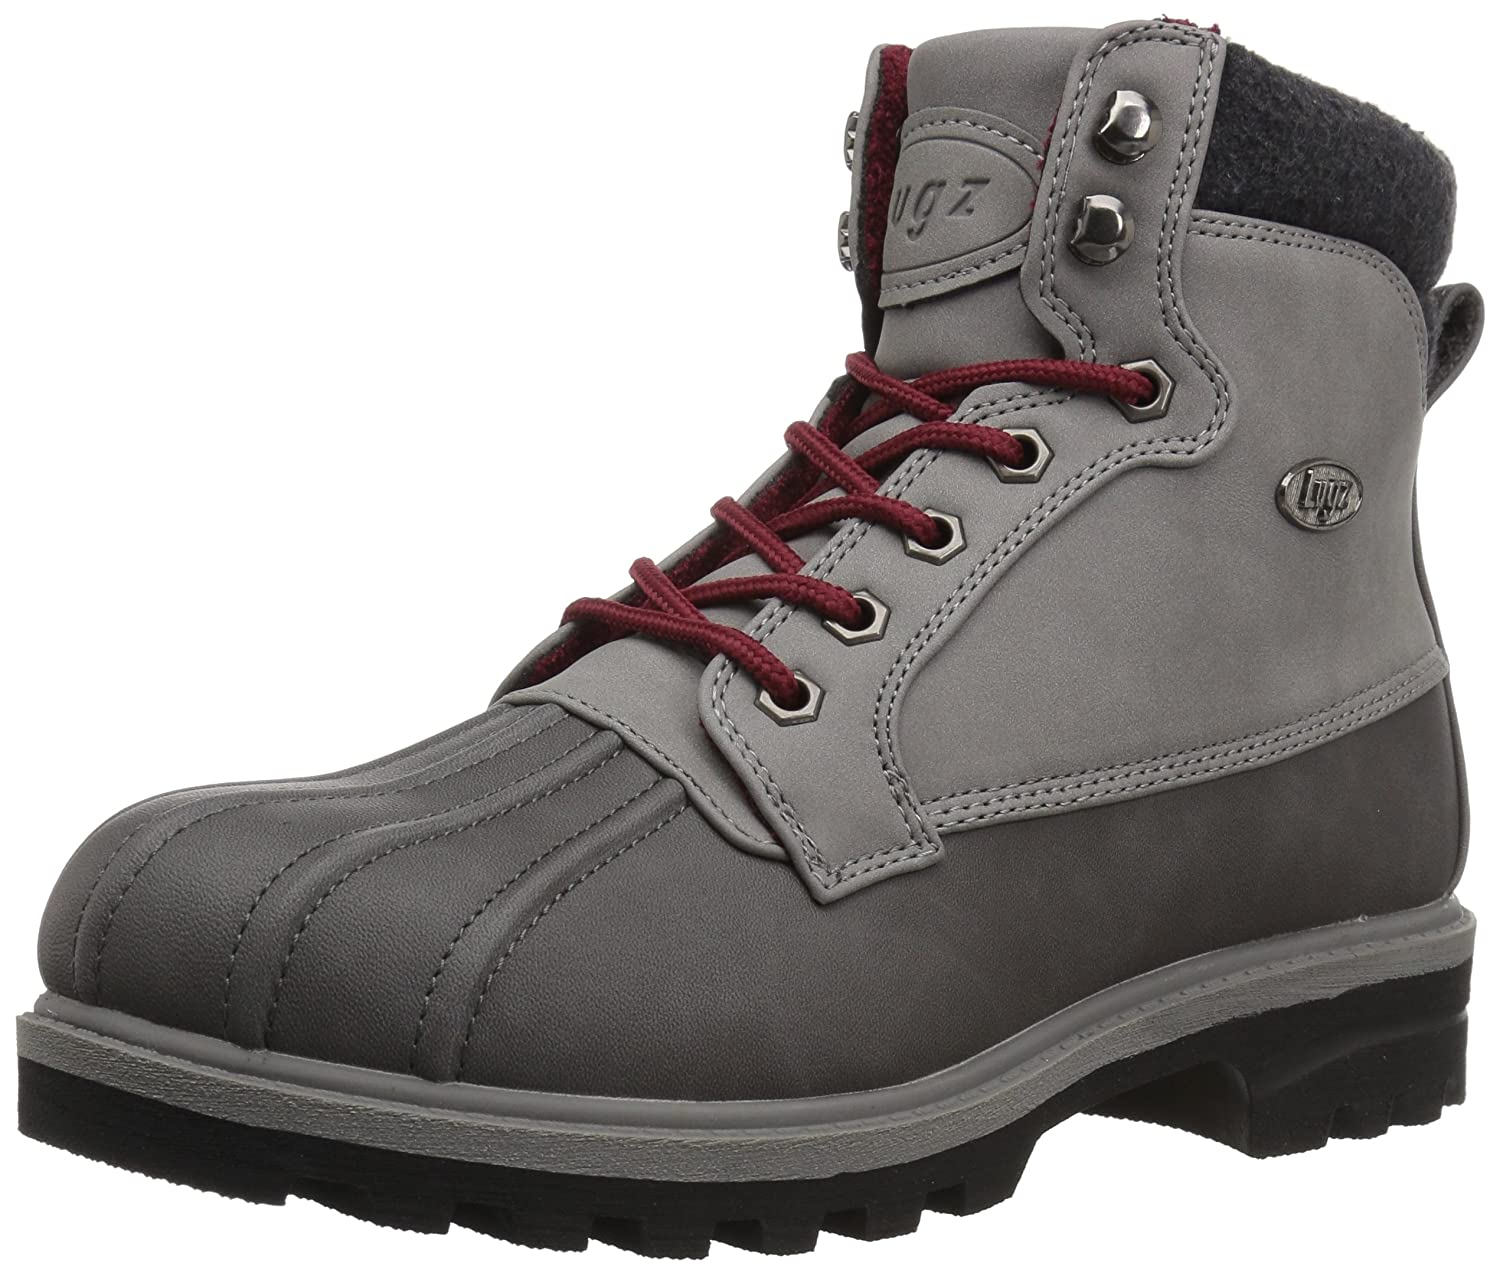 Lugz Women's Mallard Fashion Boot B073K1H1T7 8.5 B(M) US|Charcoal/Medium Grey/Black/Crimson